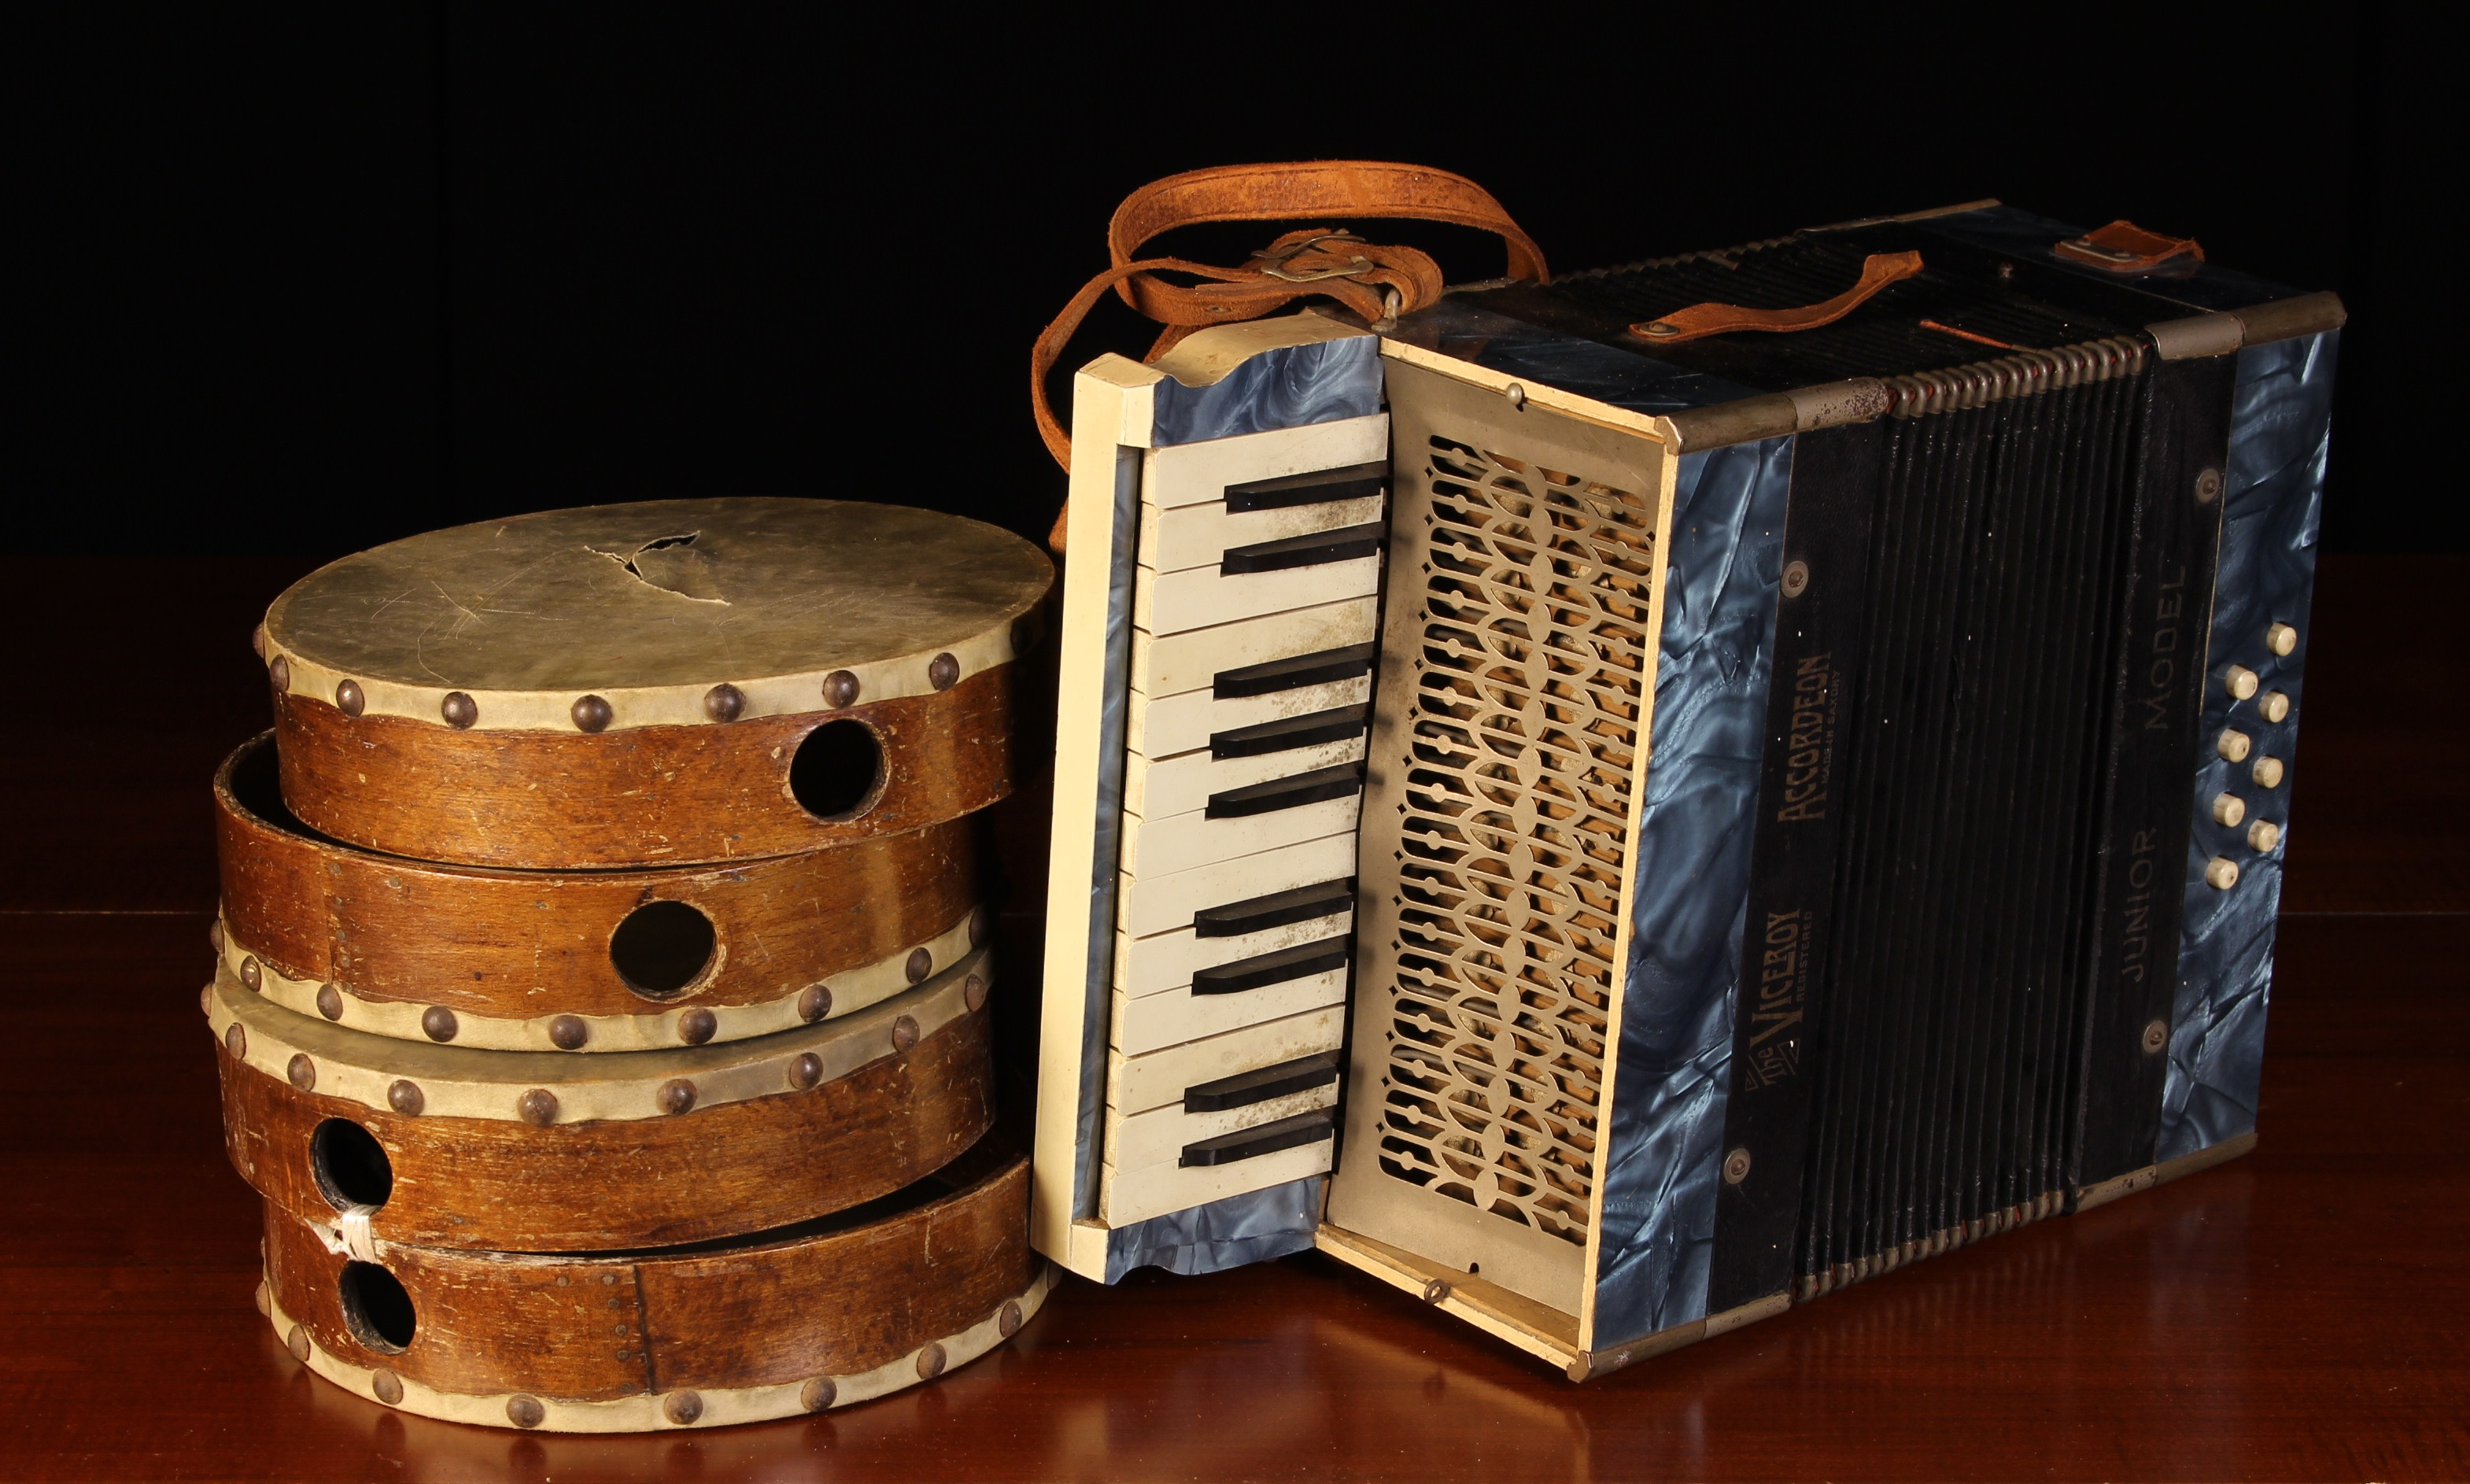 A Vintage Accordion; 'The Viceroy' Junior model, made in Saxony, and four vintage tambourines (A/F).